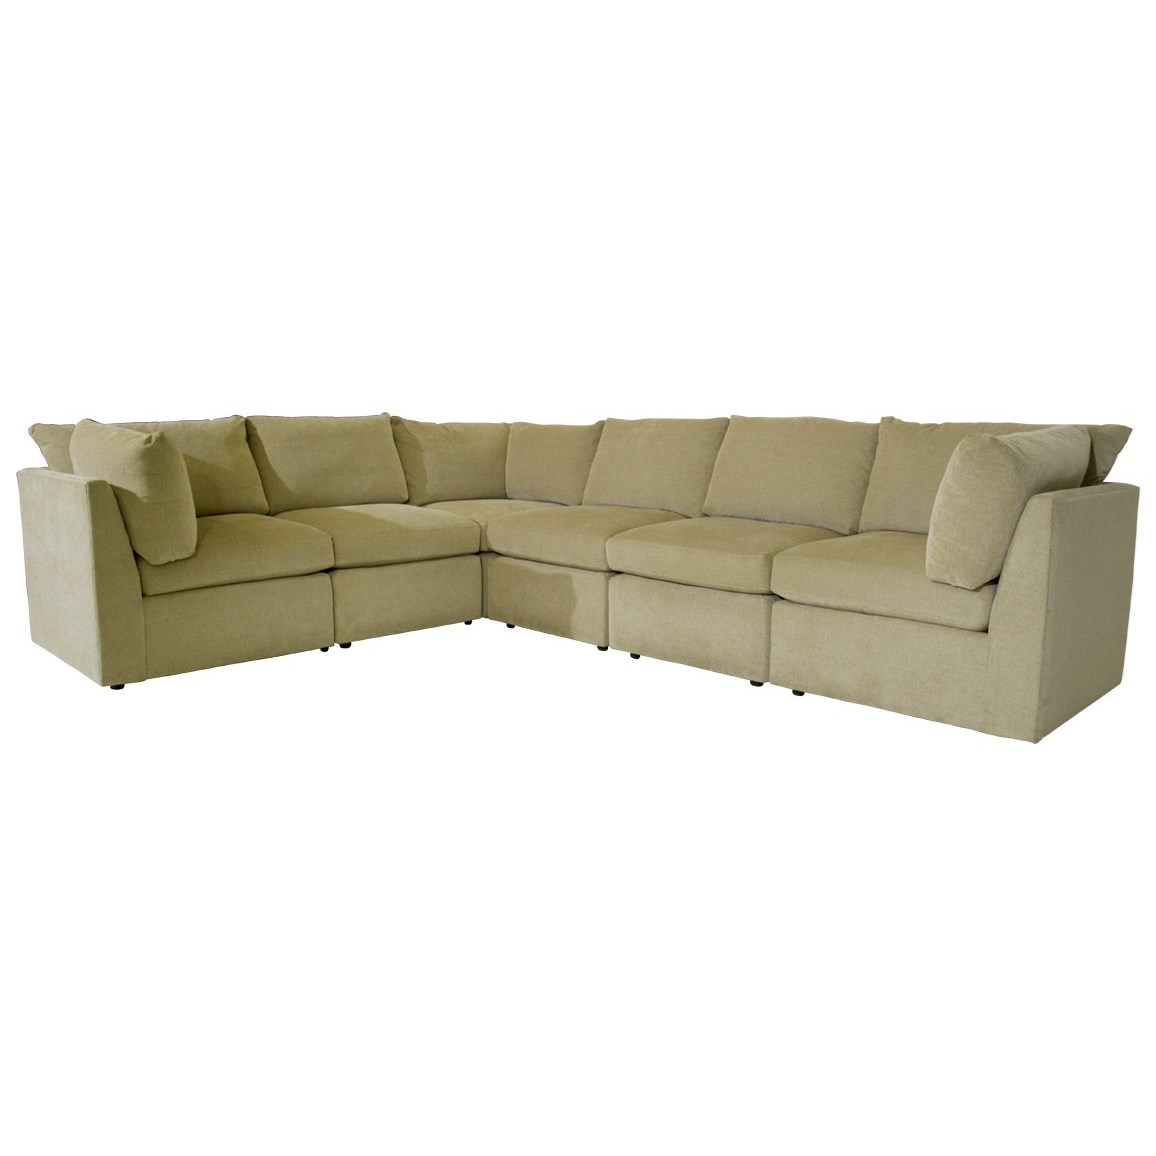 McCreary Modern 1057 Sectional - Item Number: 1057-AOB-Divani Pearl